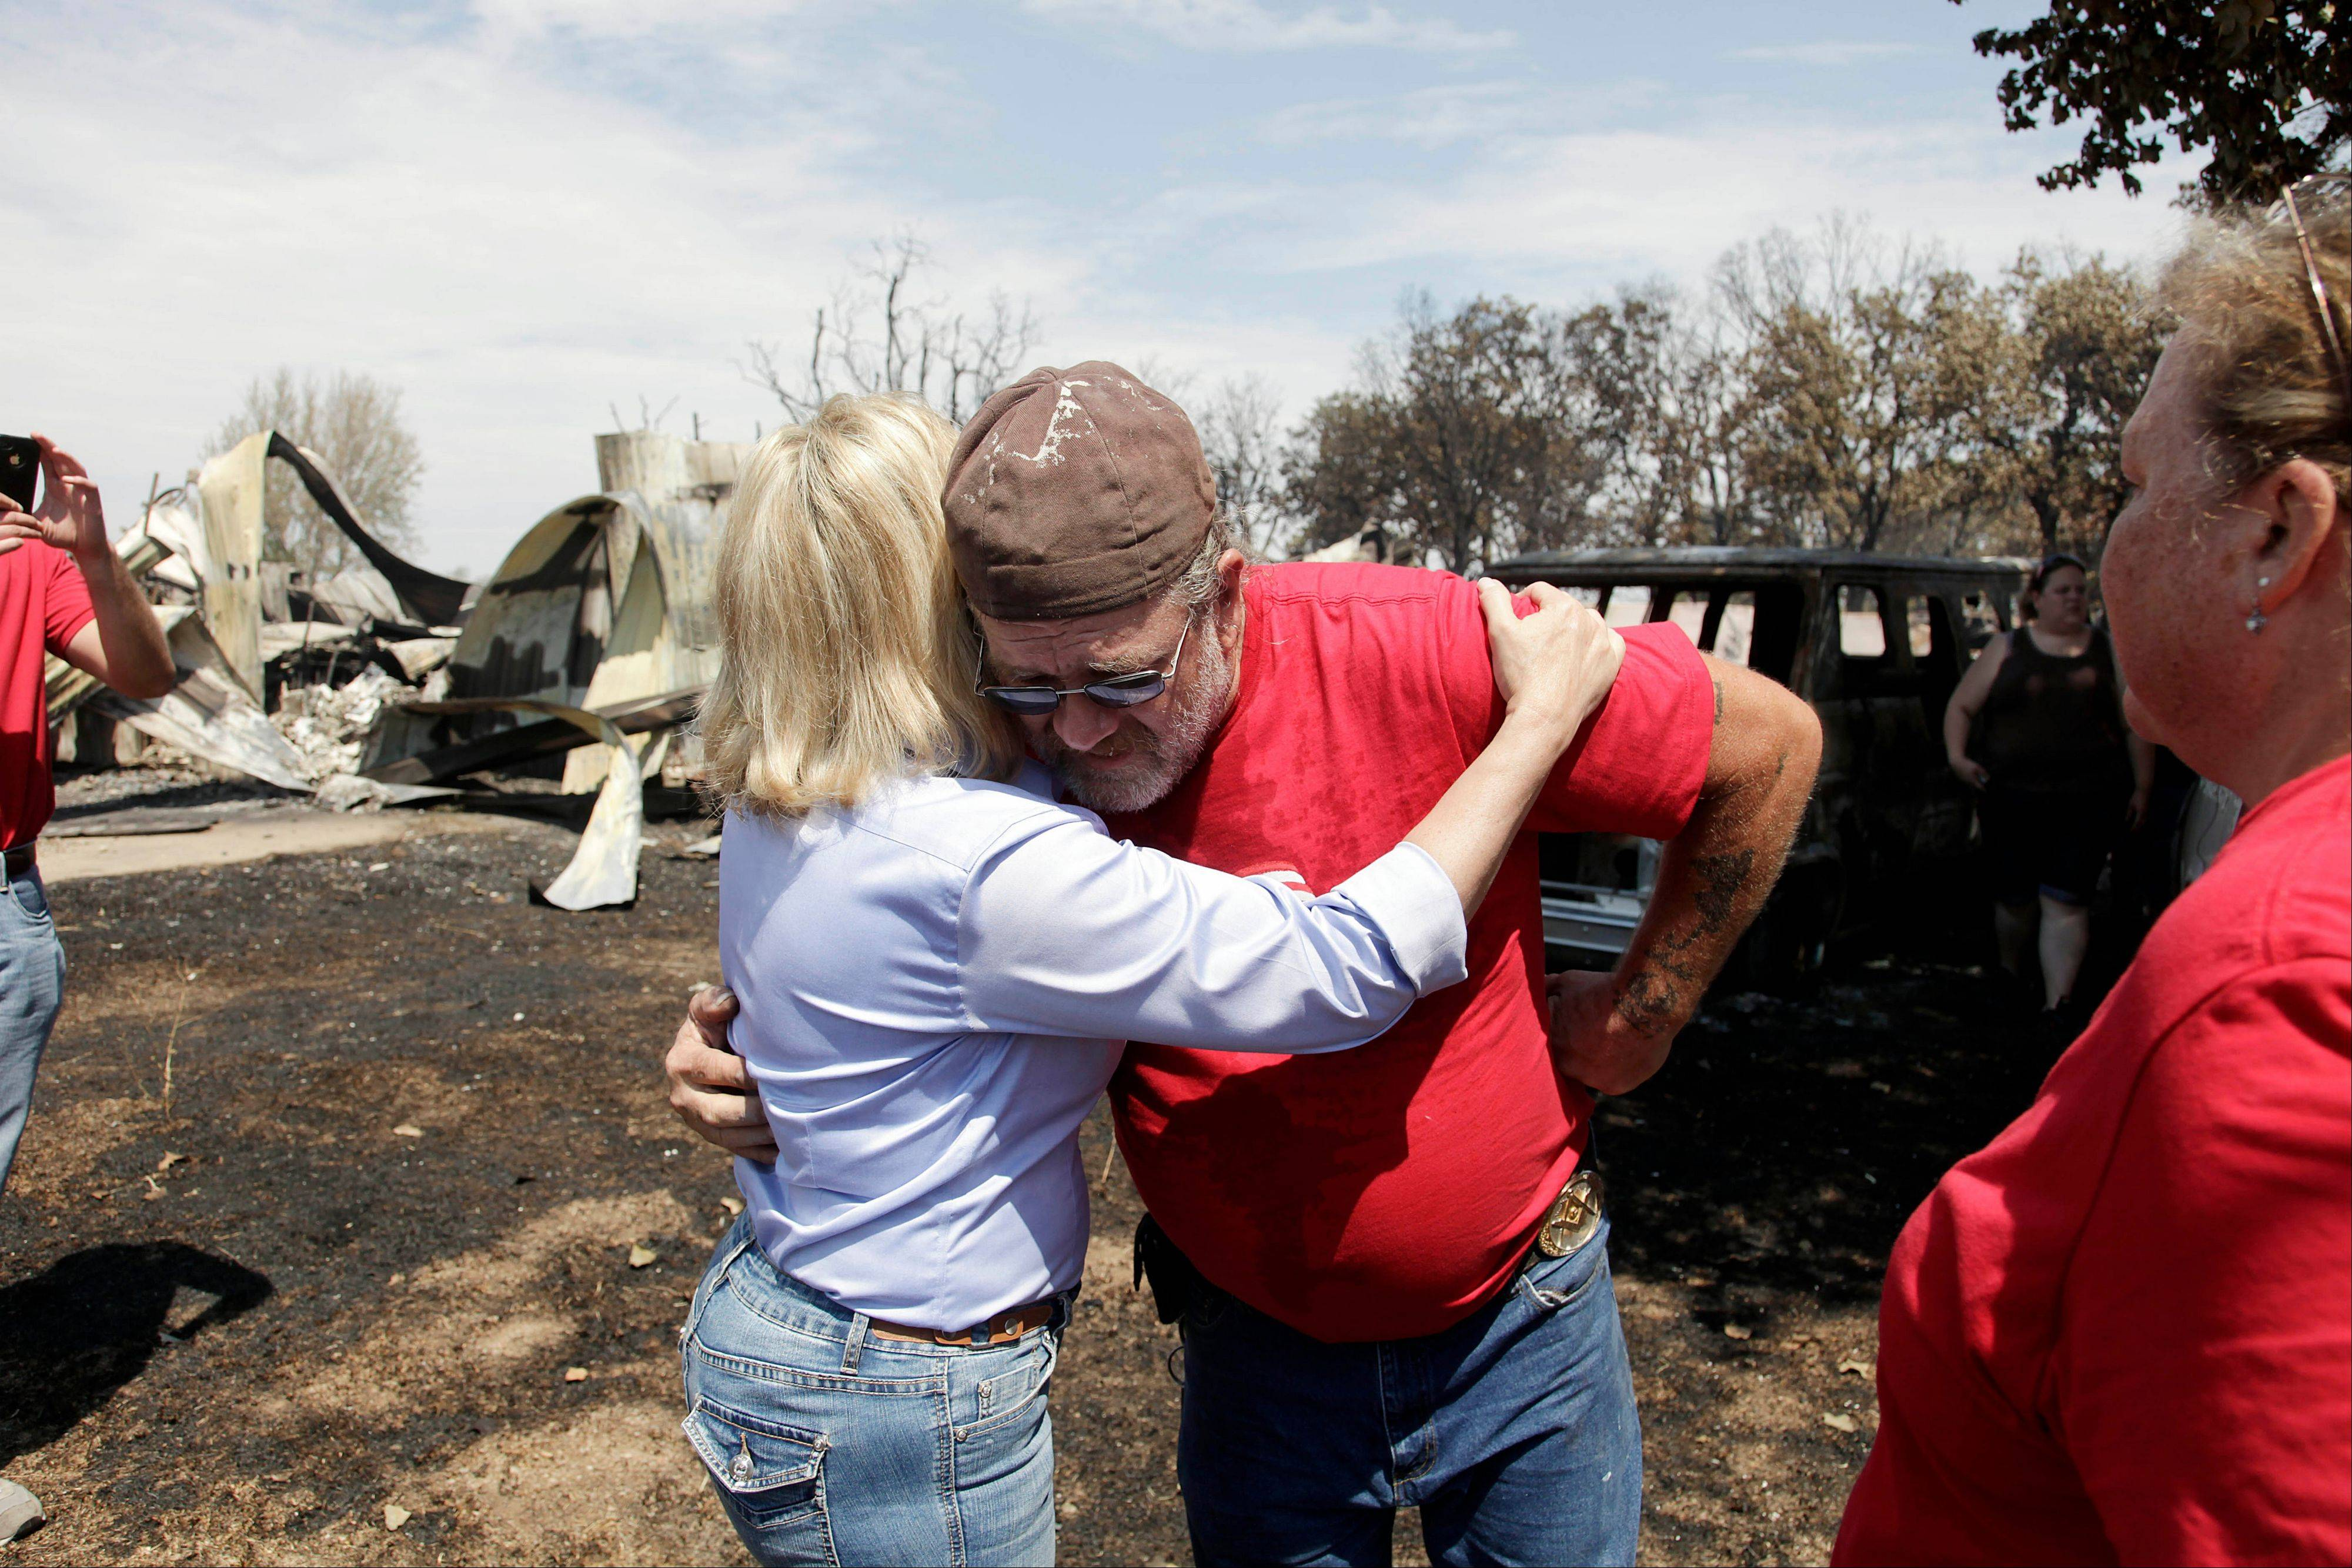 Gov. Mary Fallin, left, hugs James Sparr who lost his home and business, in the background, after wildfires burned across the state in Mannford, Okla., Sunday.